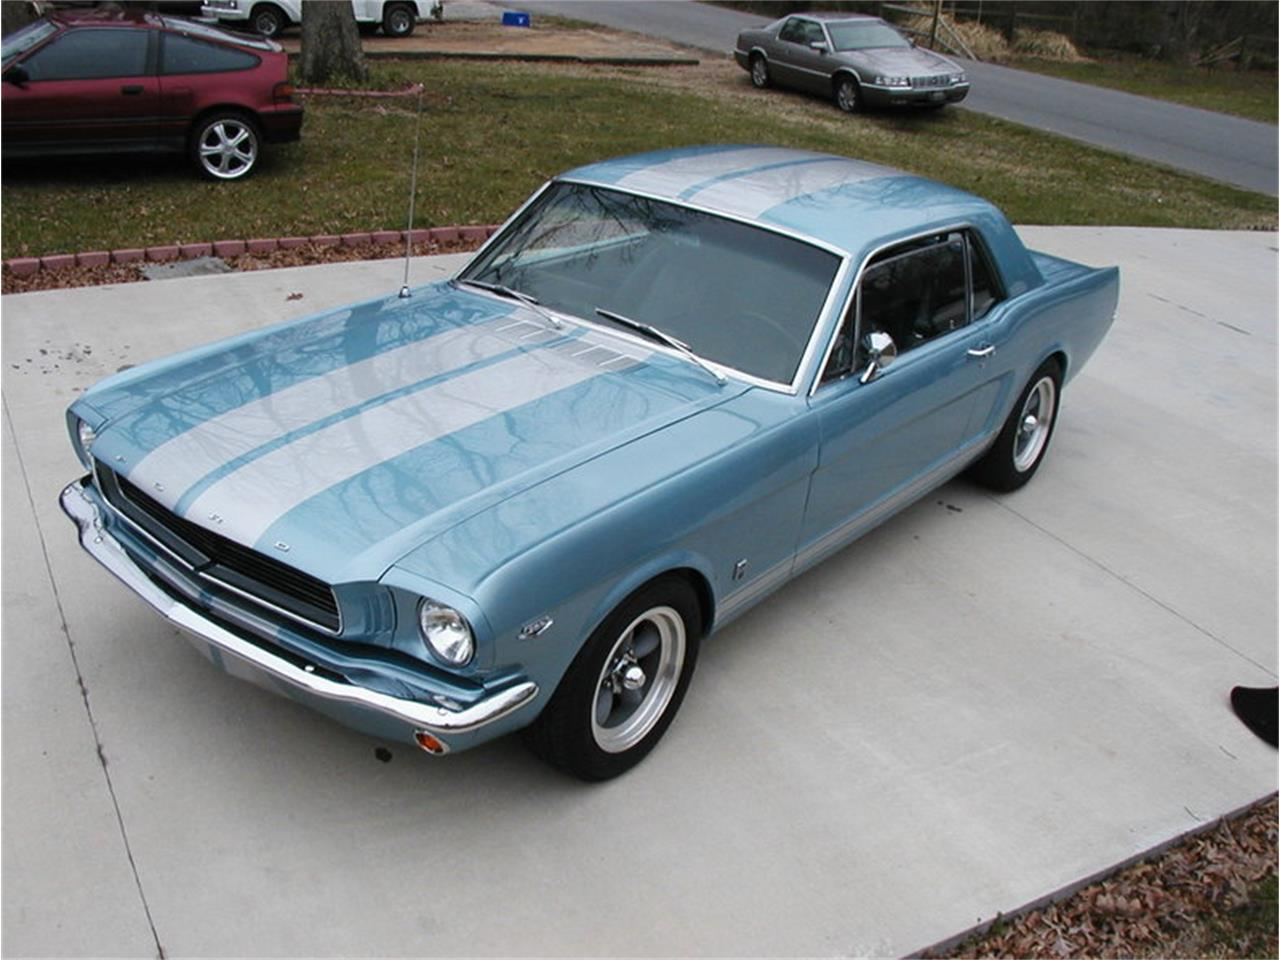 Large picture of 1965 mustang located in ohio offered by gem city classic autos nbyn